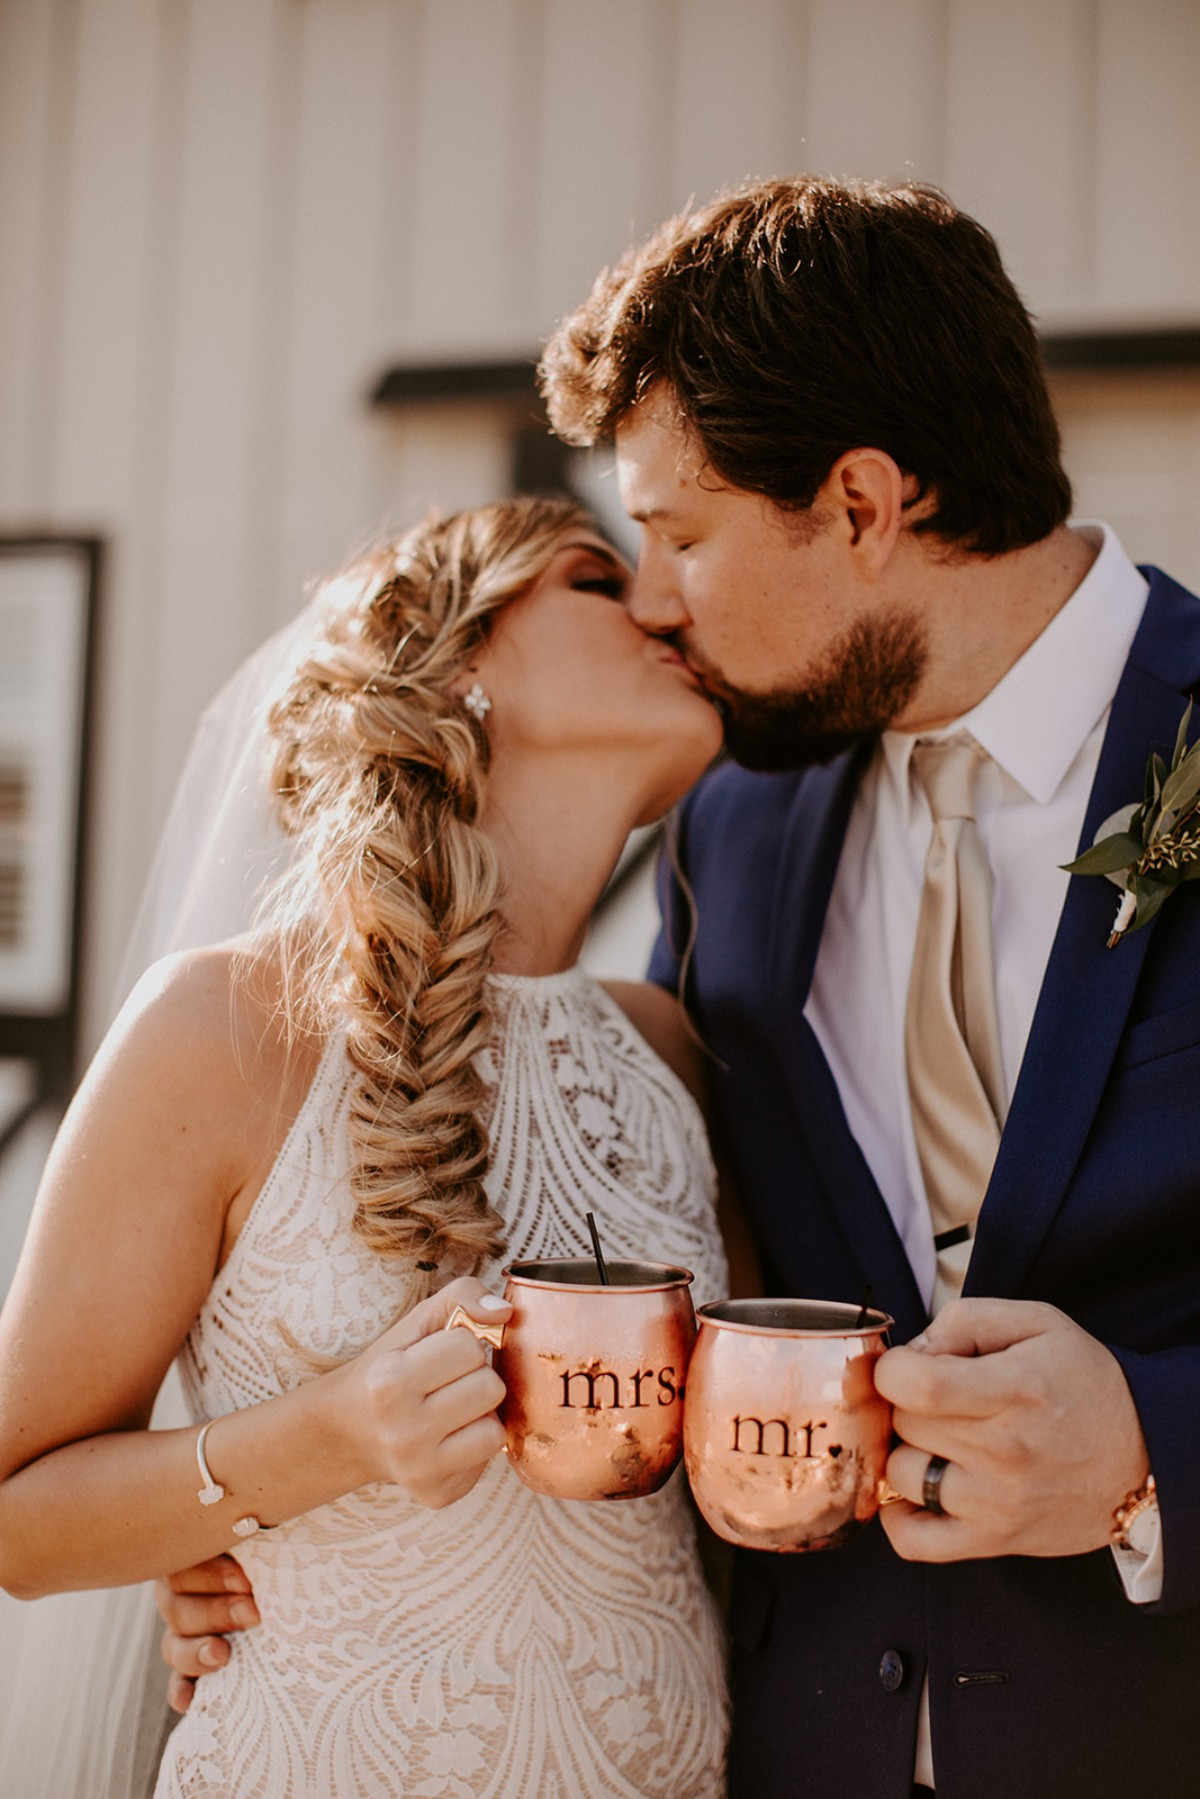 Mr. and Mrs. copper mugs